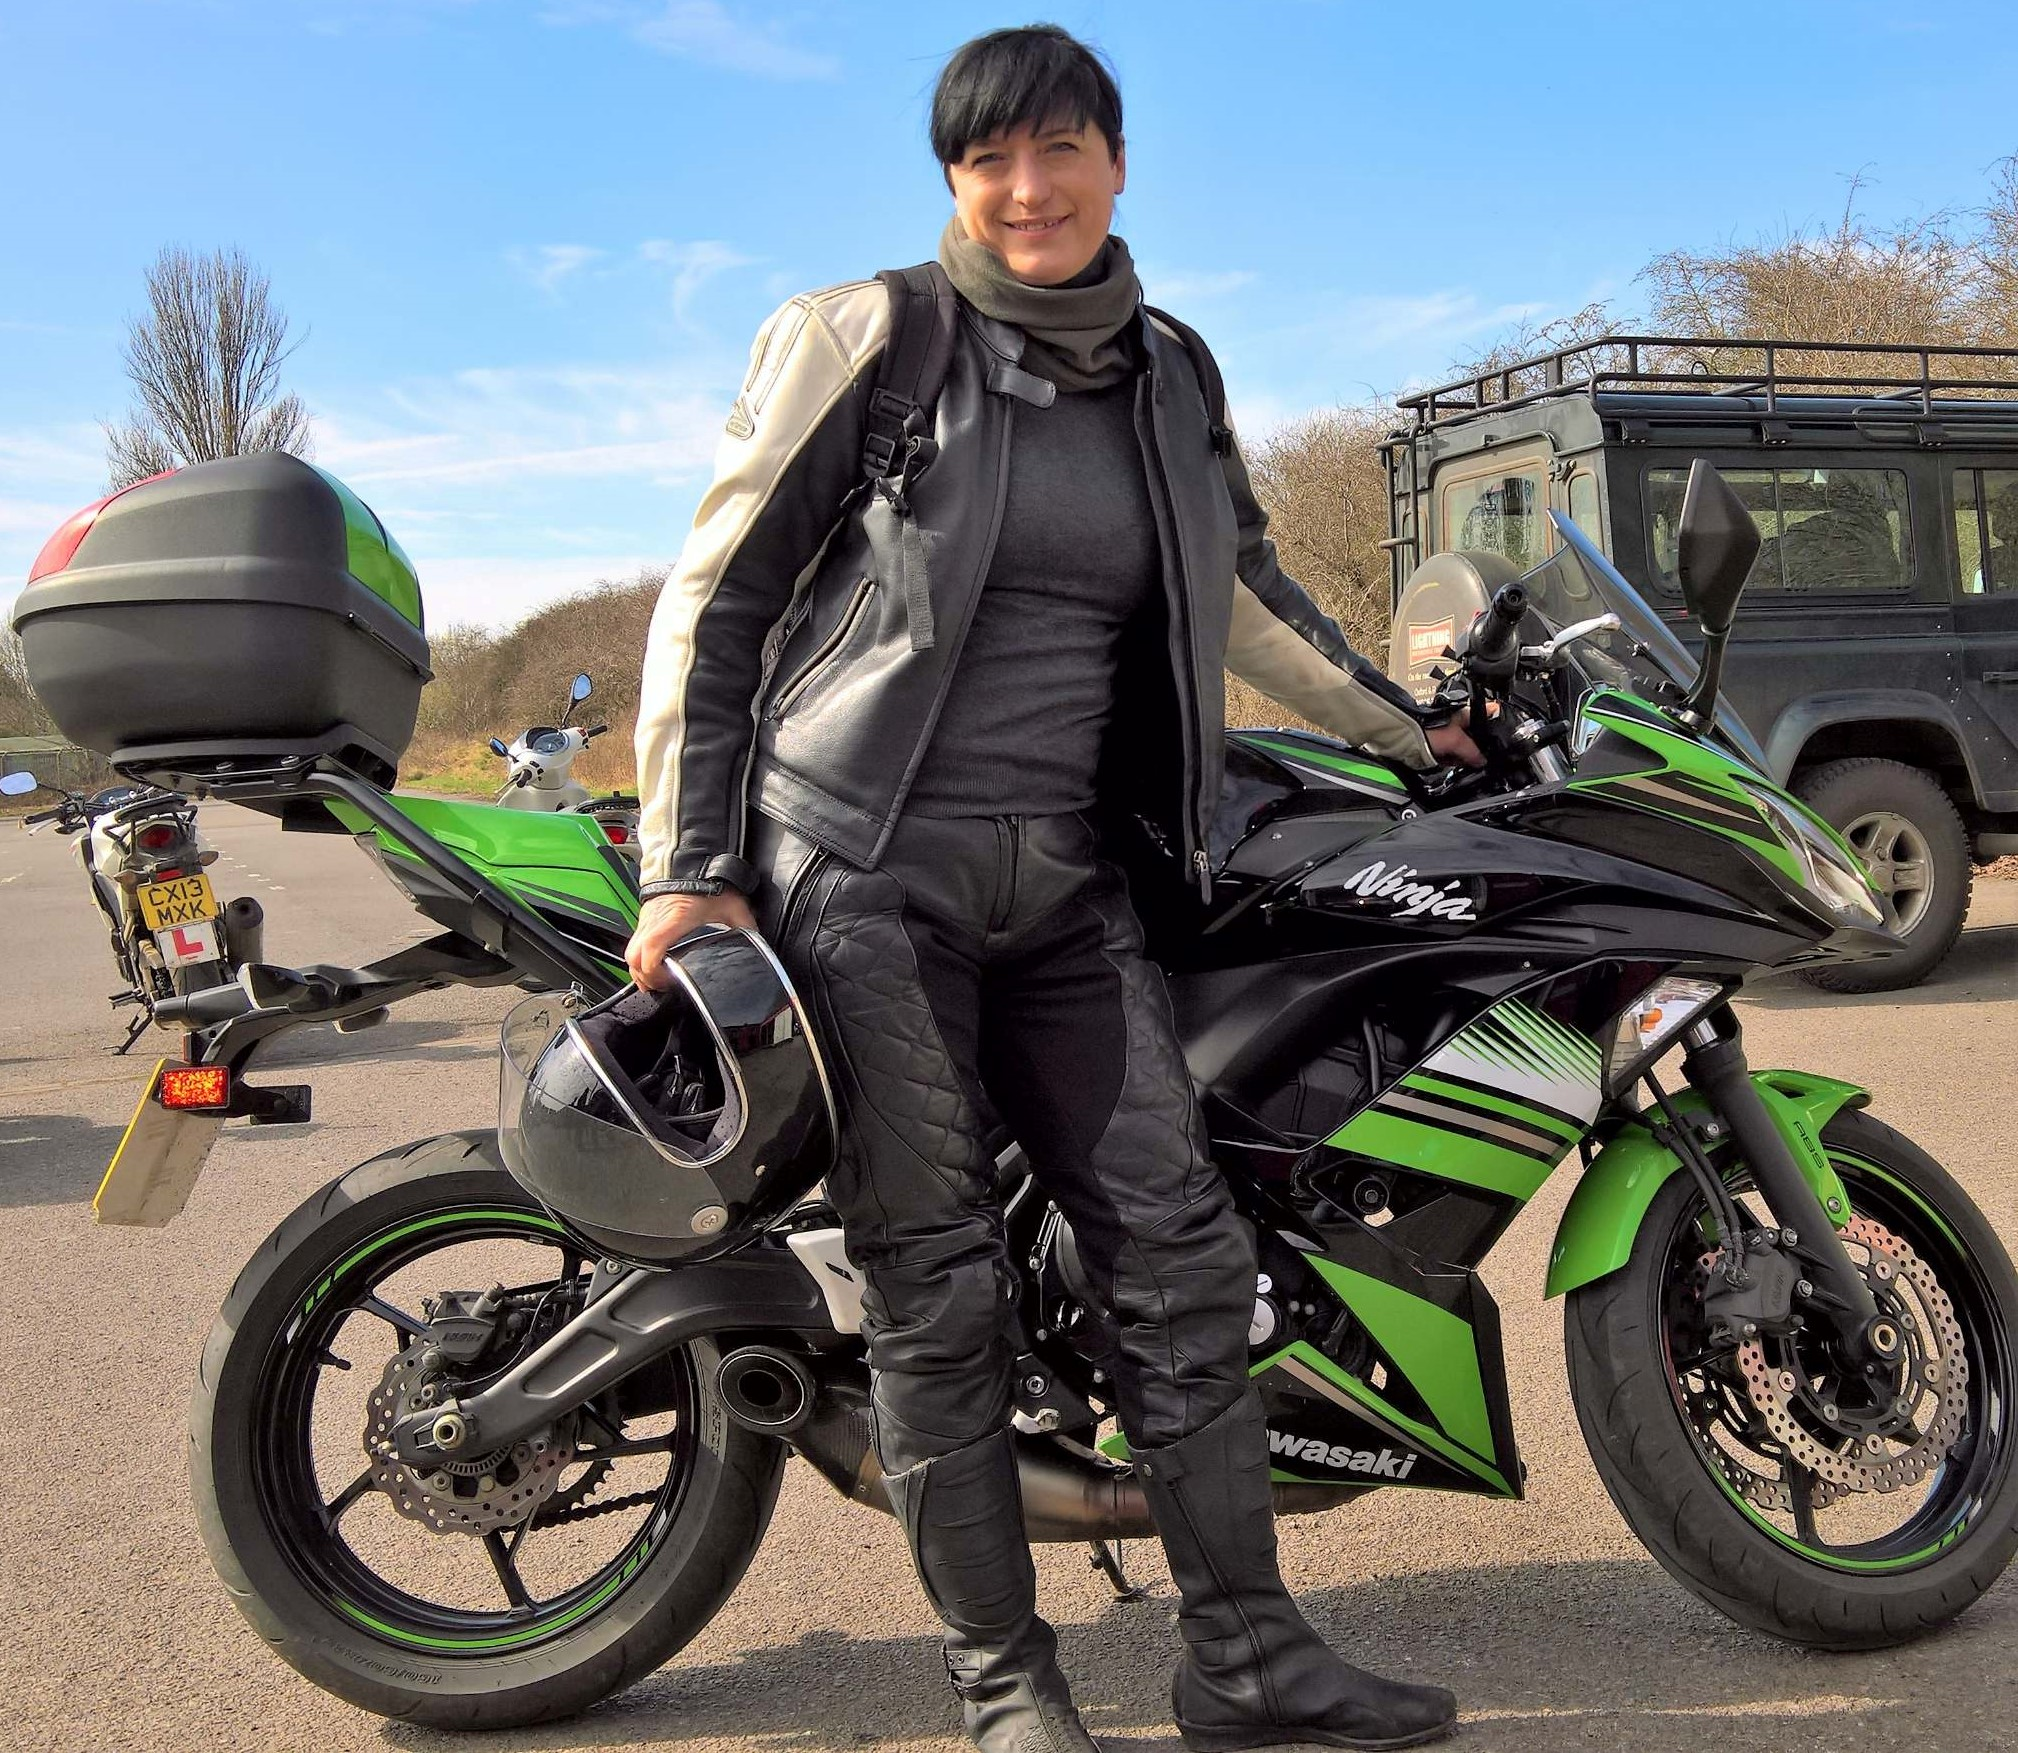 Green and black Kawasaki 650 Ninja